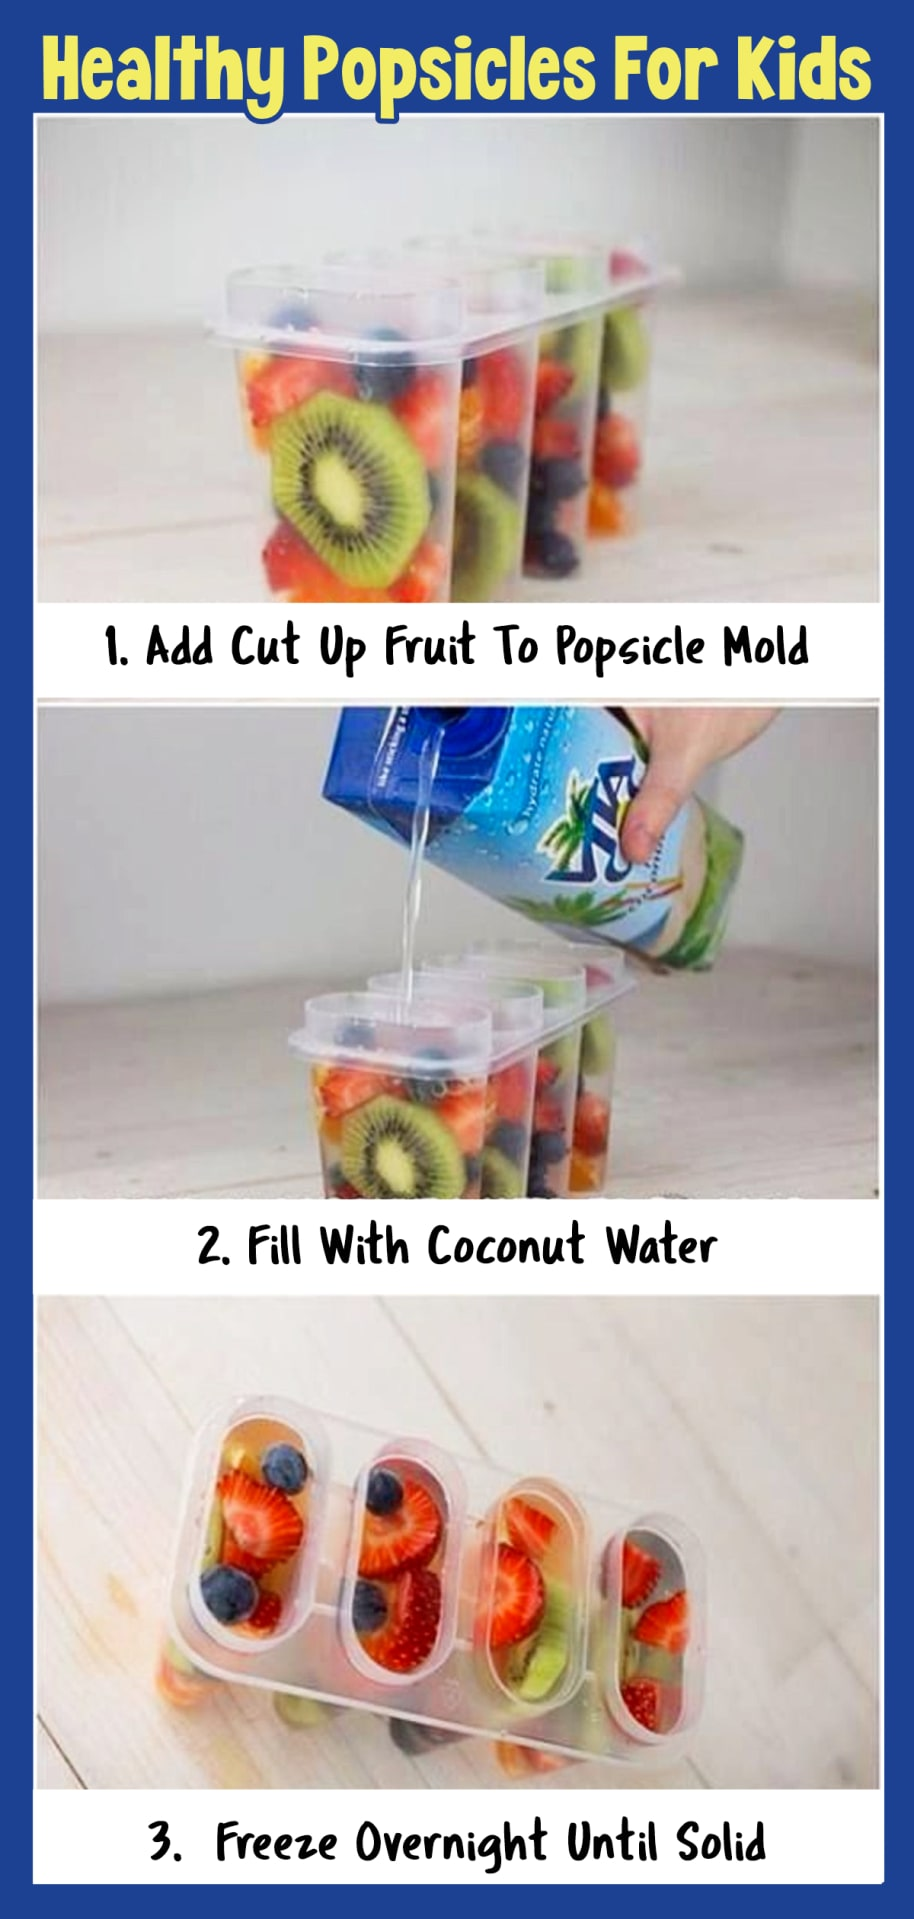 Healthy Popsicle Recipes for Kids - homemade clean eating Healthy Snacks for Kids - quick healthy snacks for kids on the go, for kids to make and healthy snacks for kids lunch boxes at school - easy and fun healthy snacks for toddlers and preschoolers - fun school snacks for kids too!